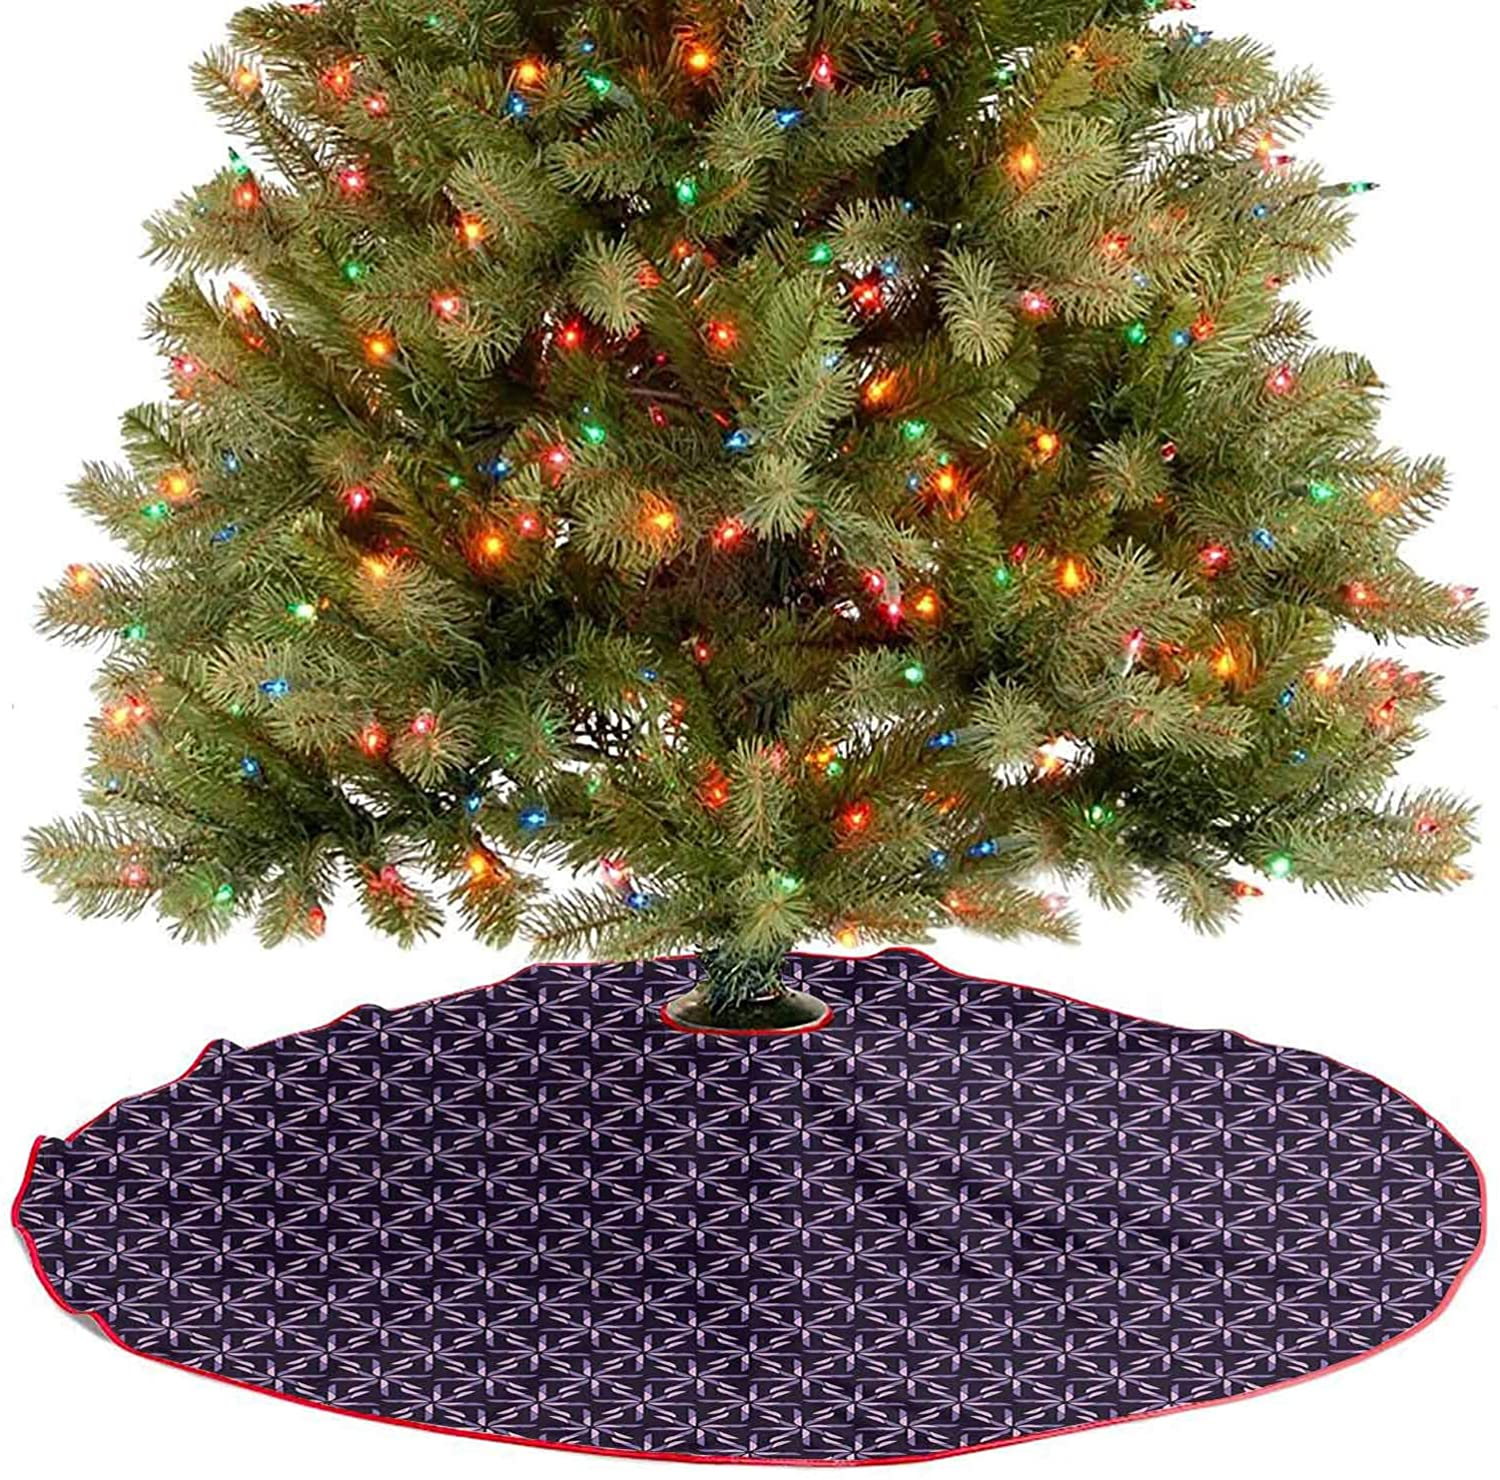 YOYI-Home Christmas Tree Skirt Patterns, Geometric Tree Skirts 30